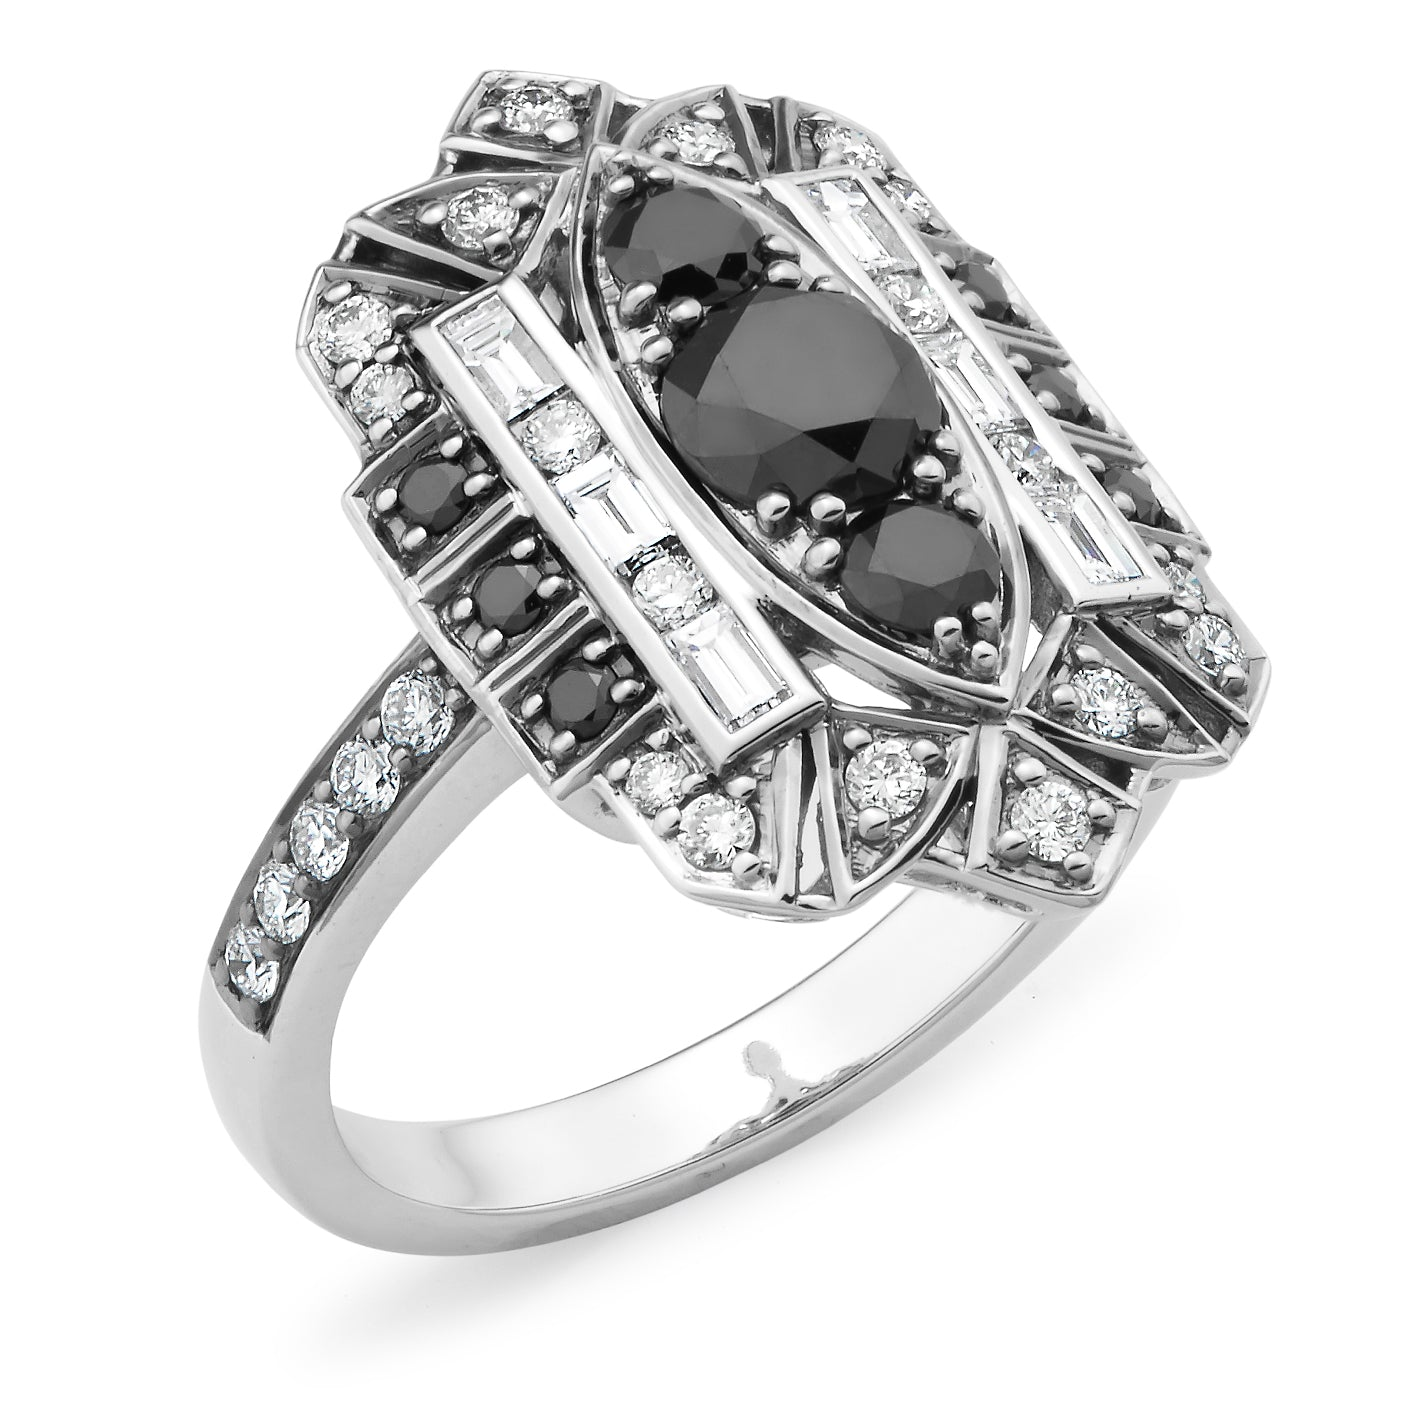 Black Diamonds & White Diamonds Bead Set Ring Estelle in 9ct White Gold